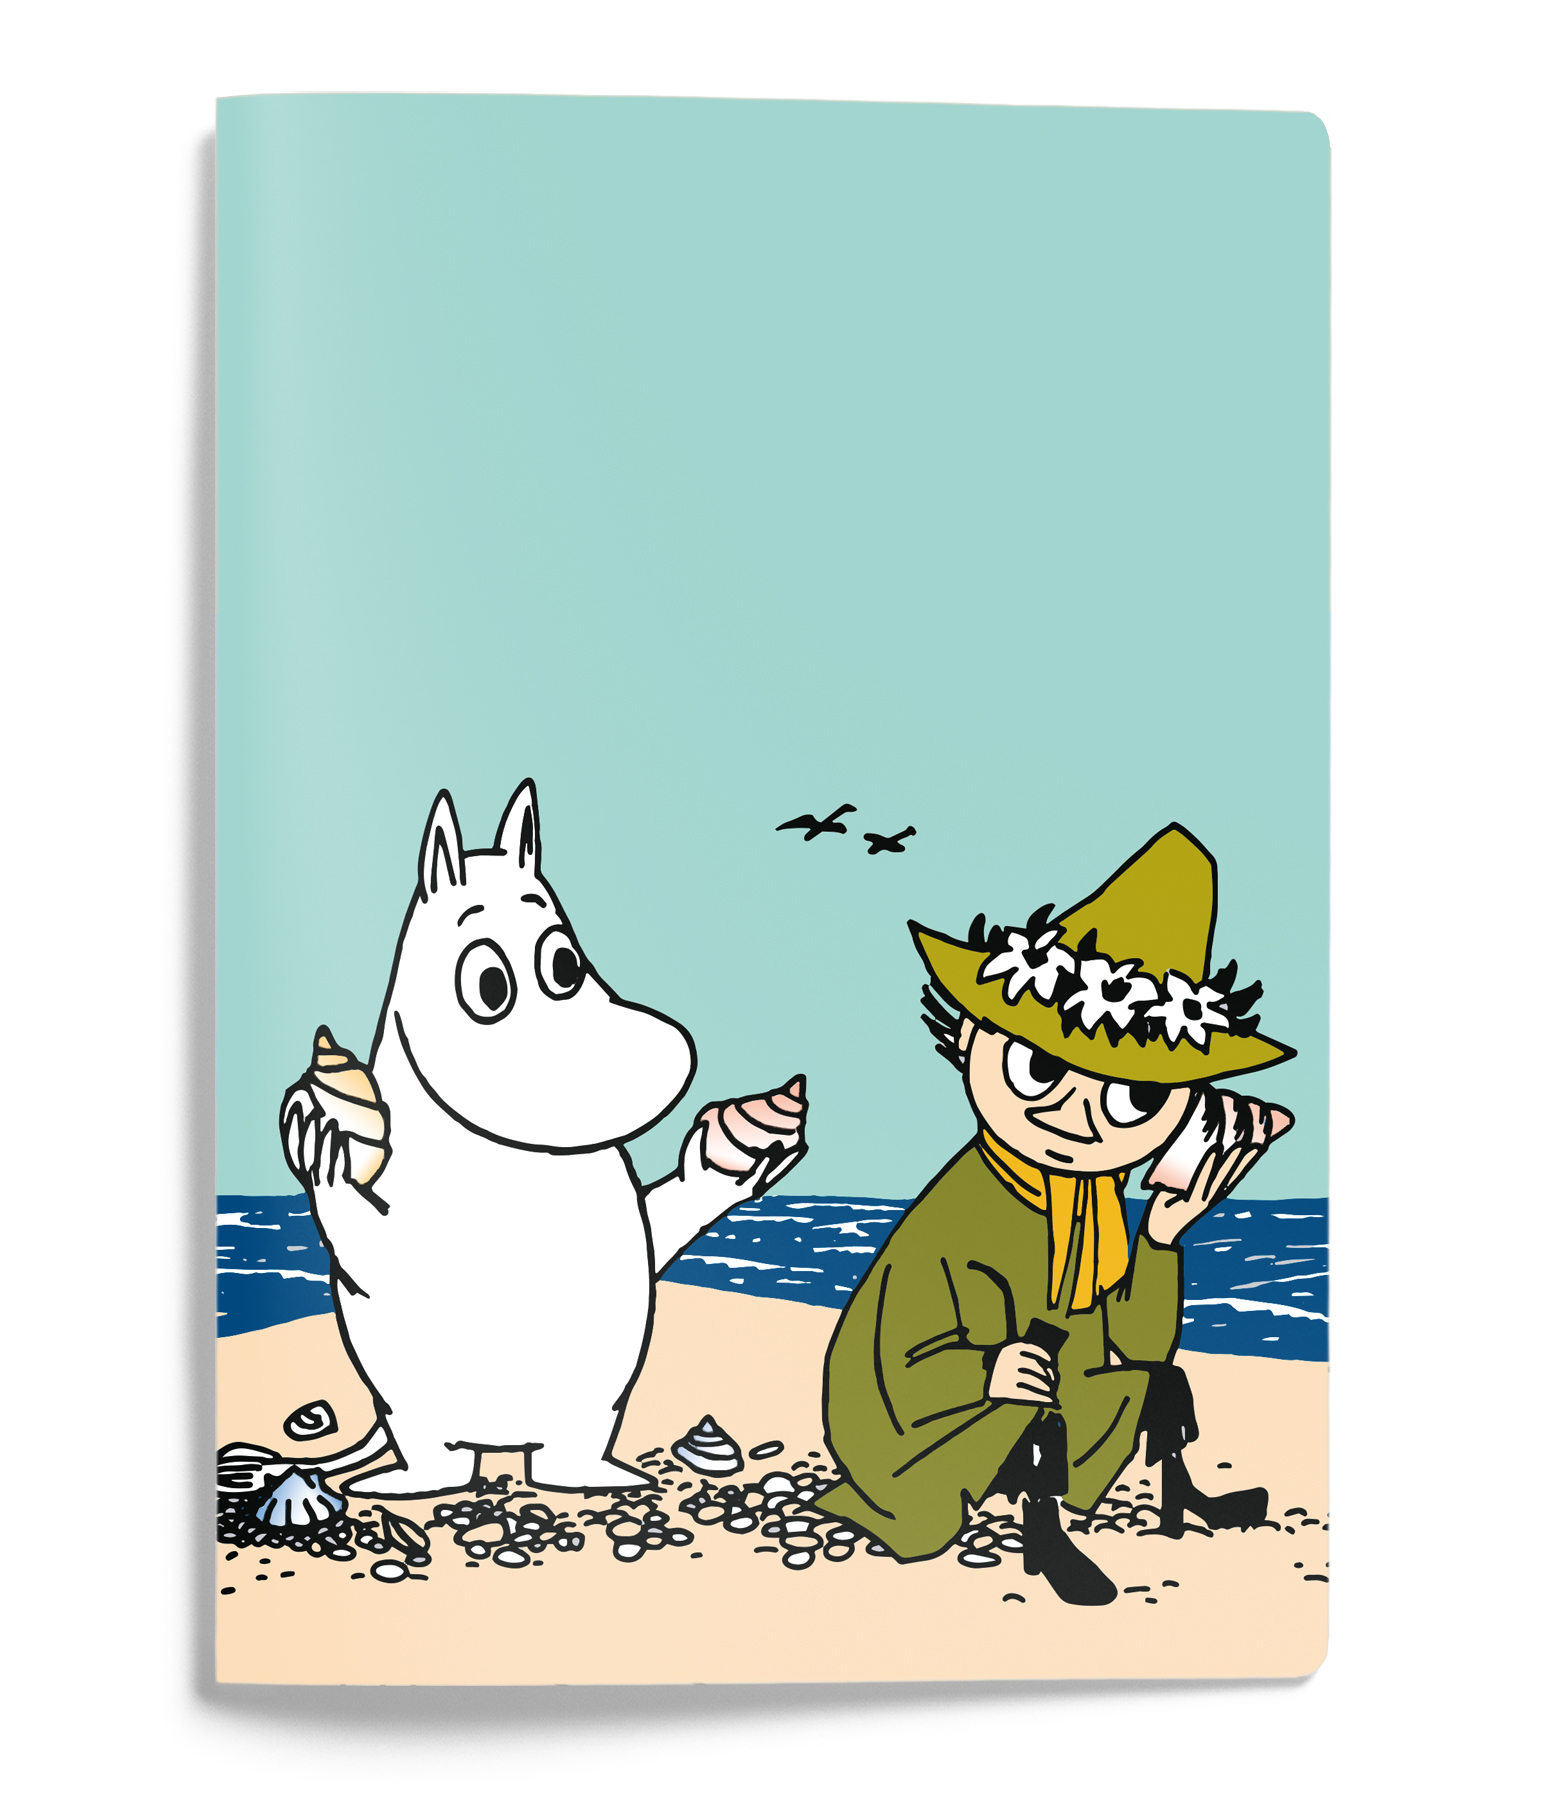 Putinki Softcover Notebook A5 Moomintroll and Snufkin on a shore